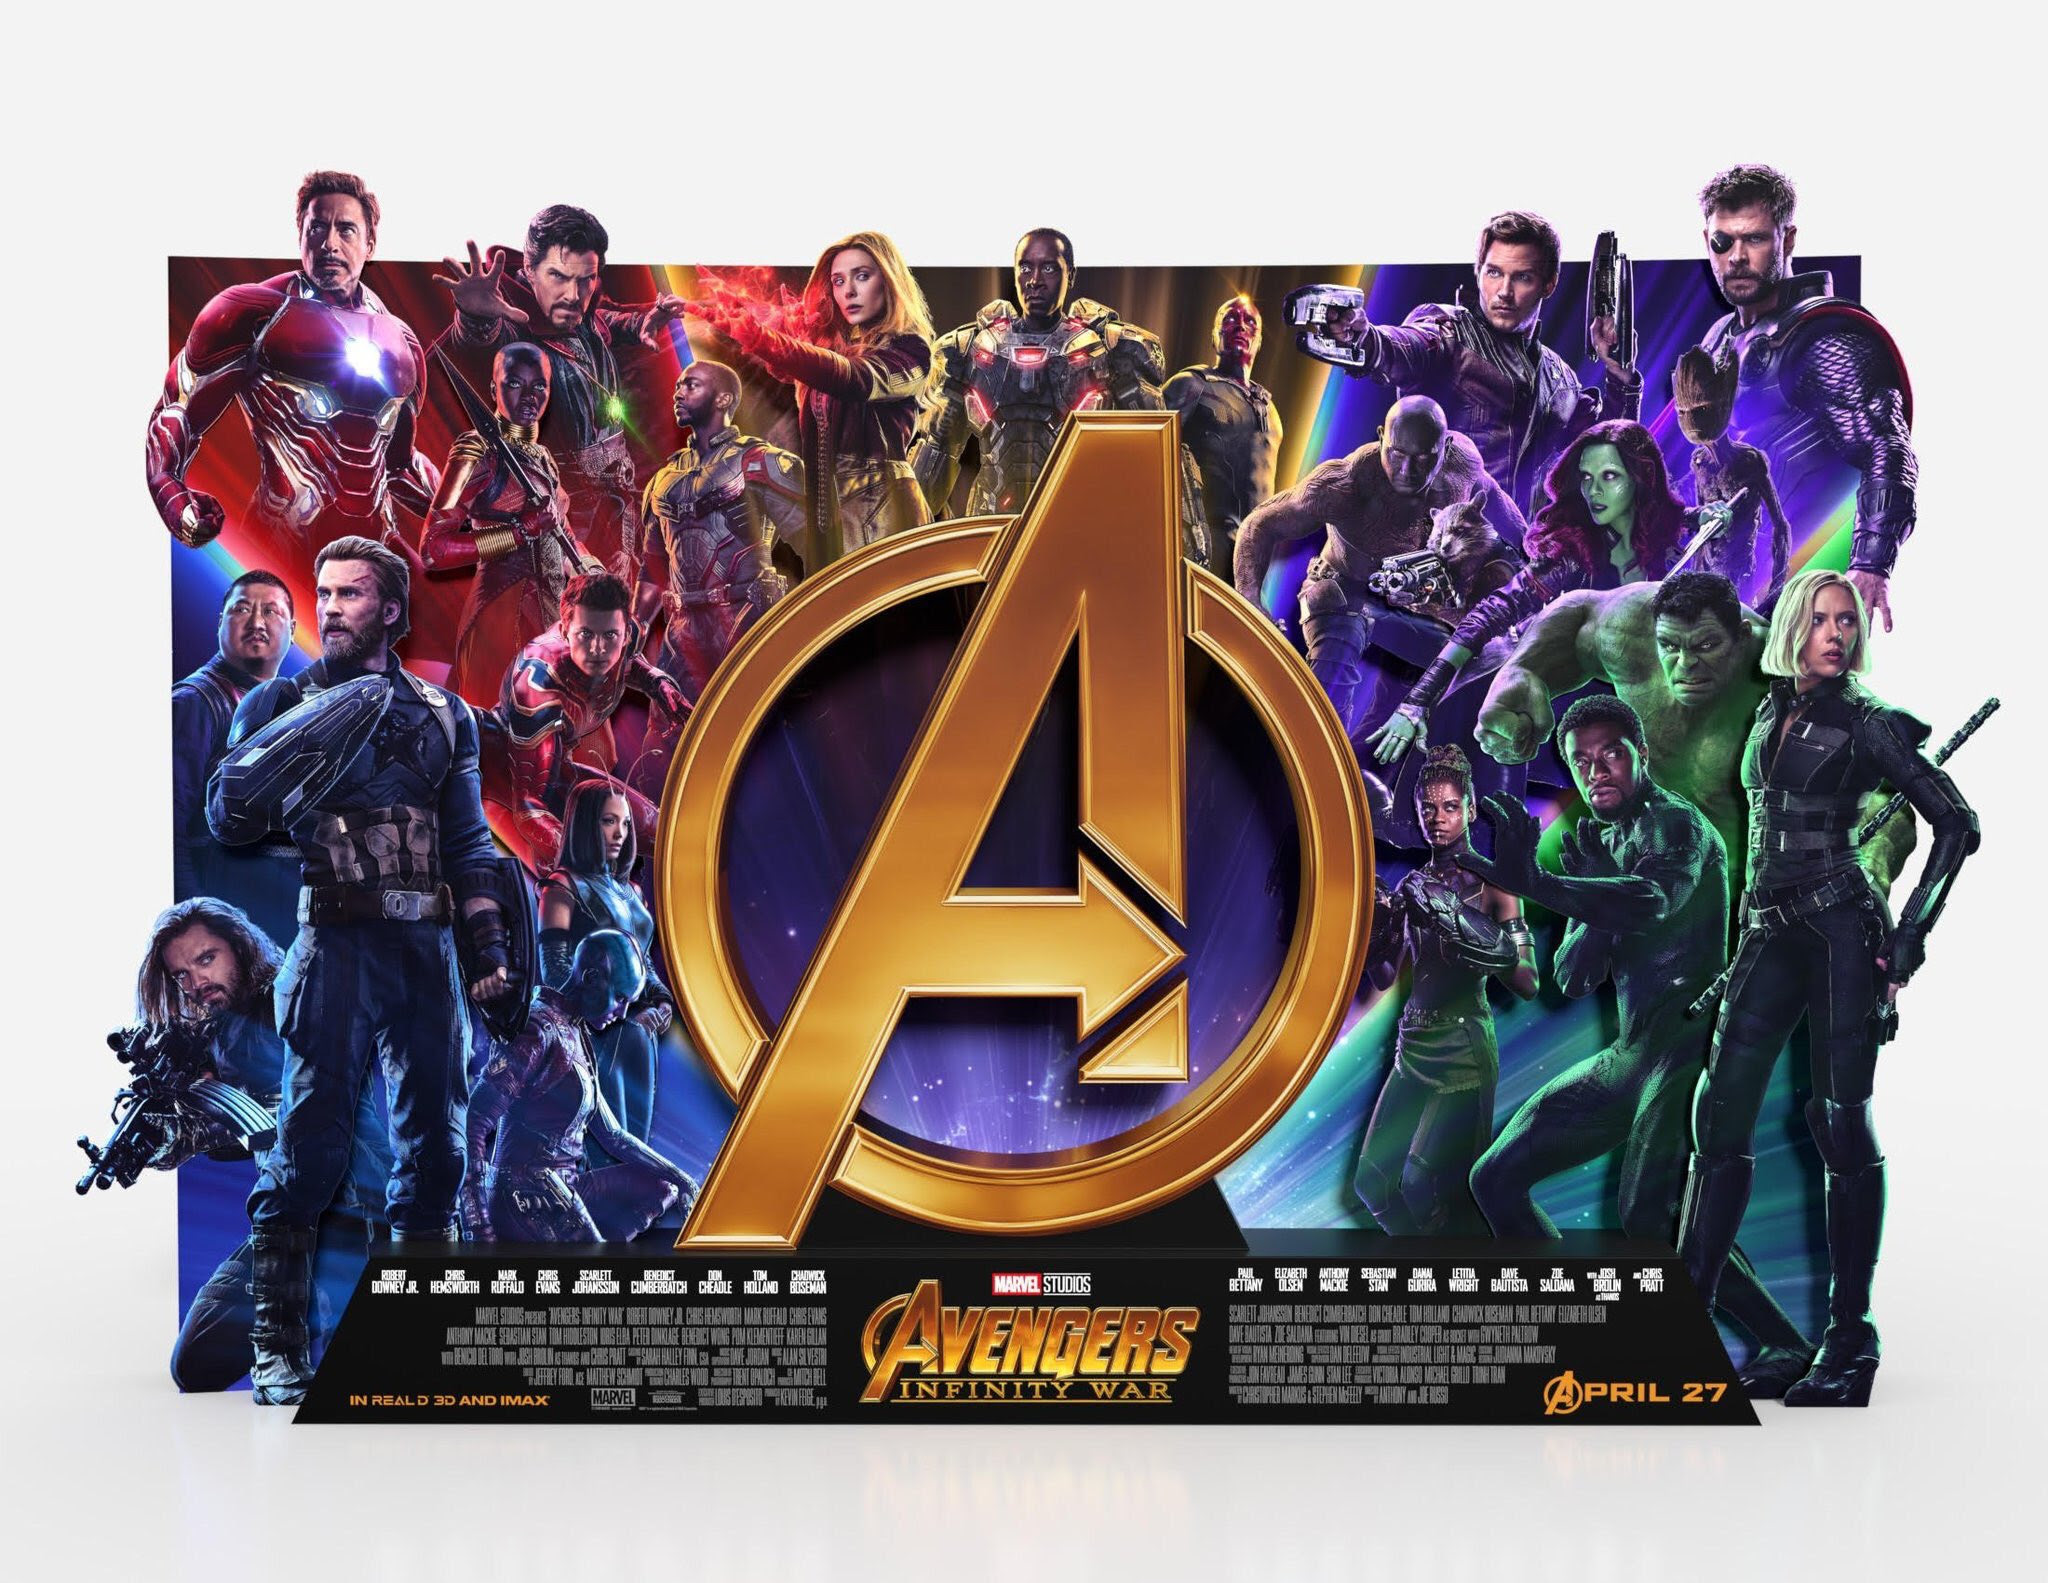 Avengers: Infinity War (2018) English with Behind The Scenes